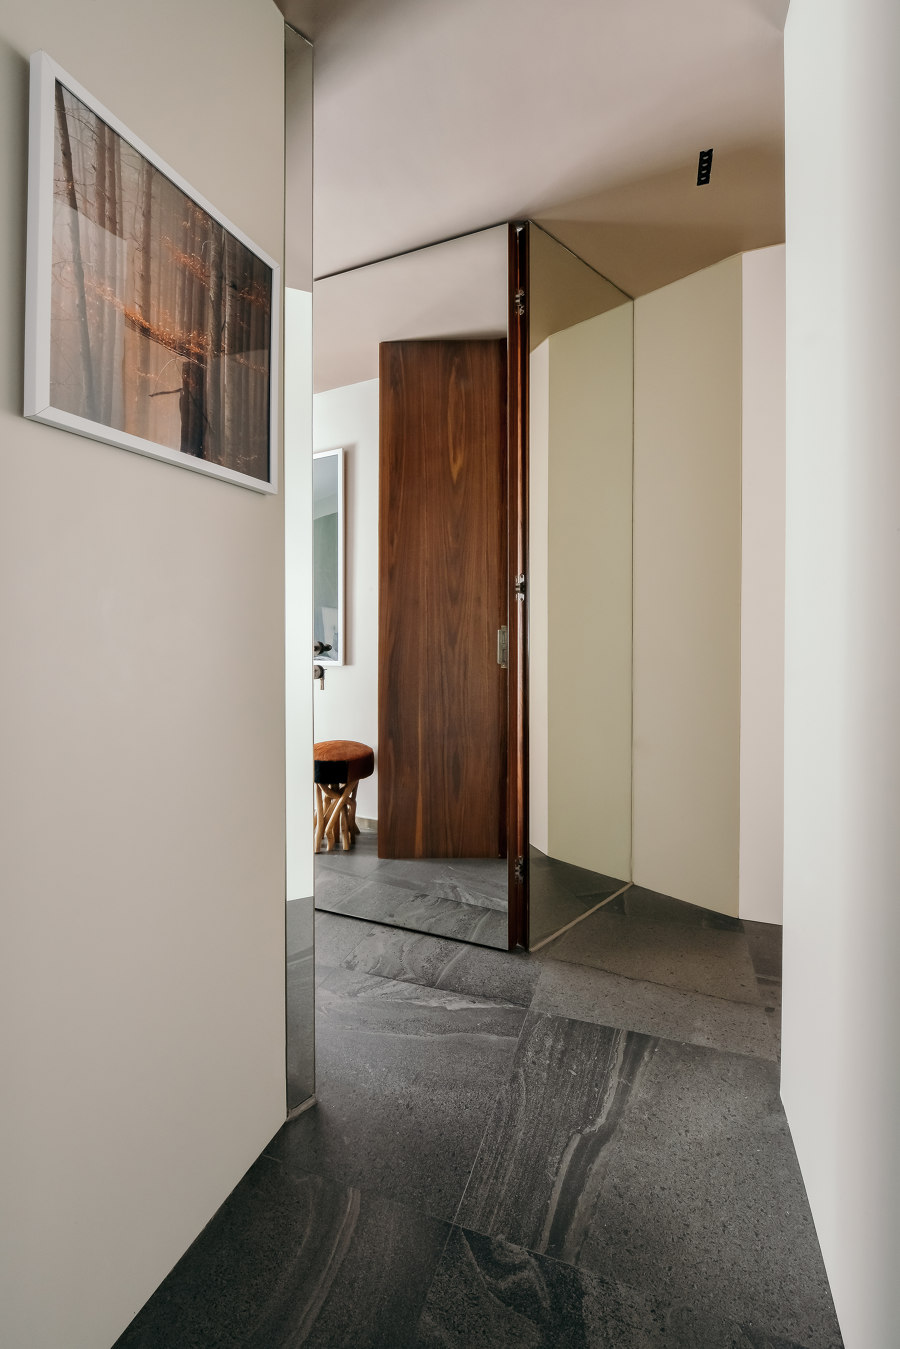 A Folding Residence by GE Design | Living space